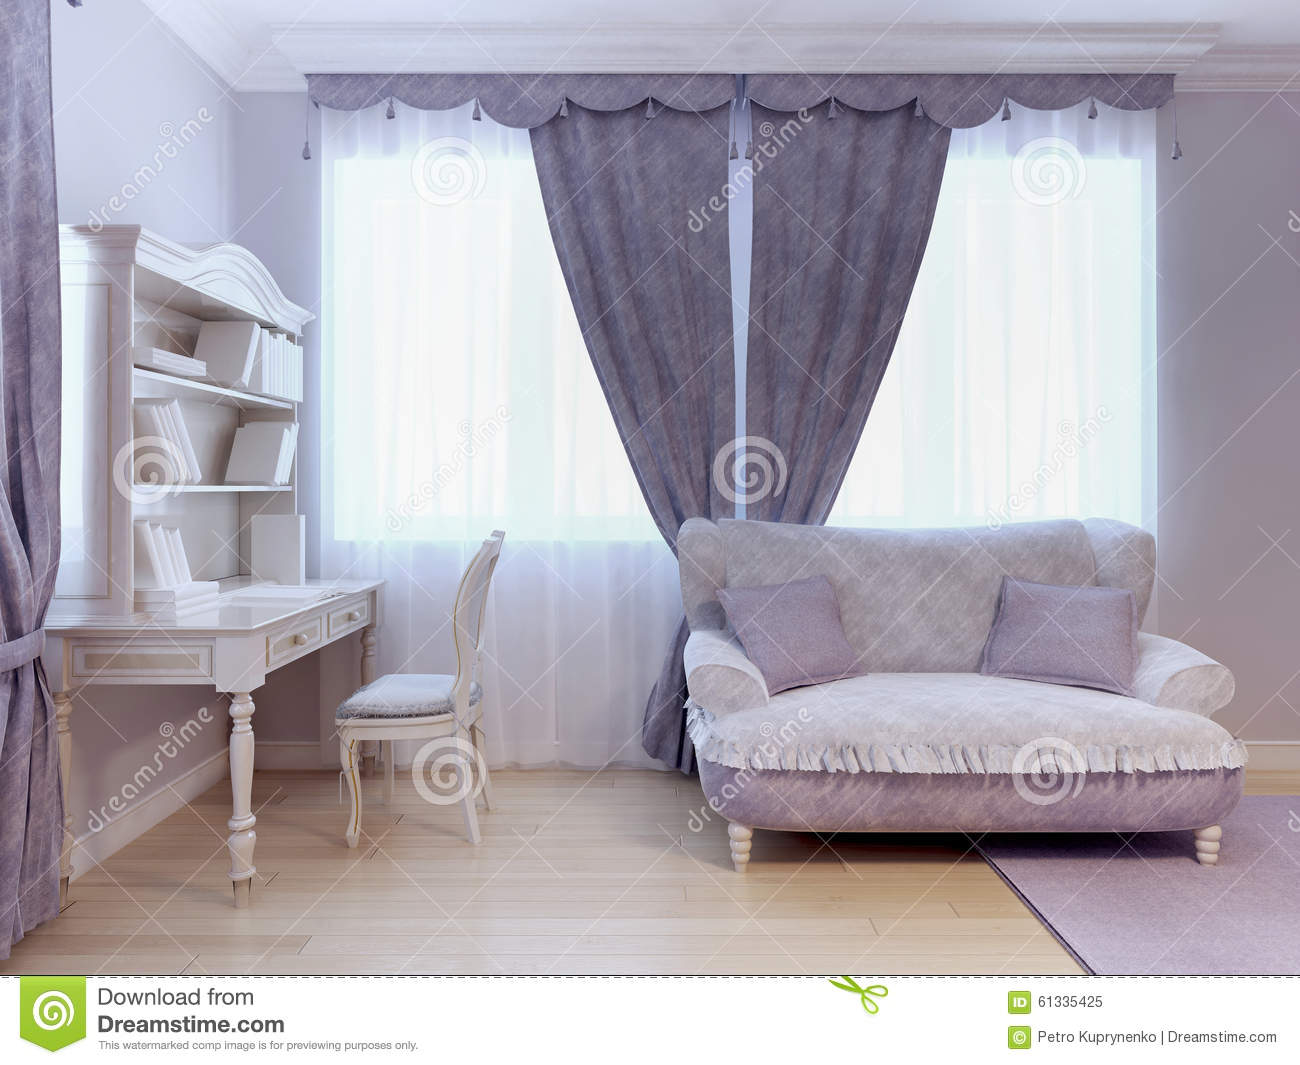 sofa and desk in bedroom stock illustration image 61335425. Black Bedroom Furniture Sets. Home Design Ideas